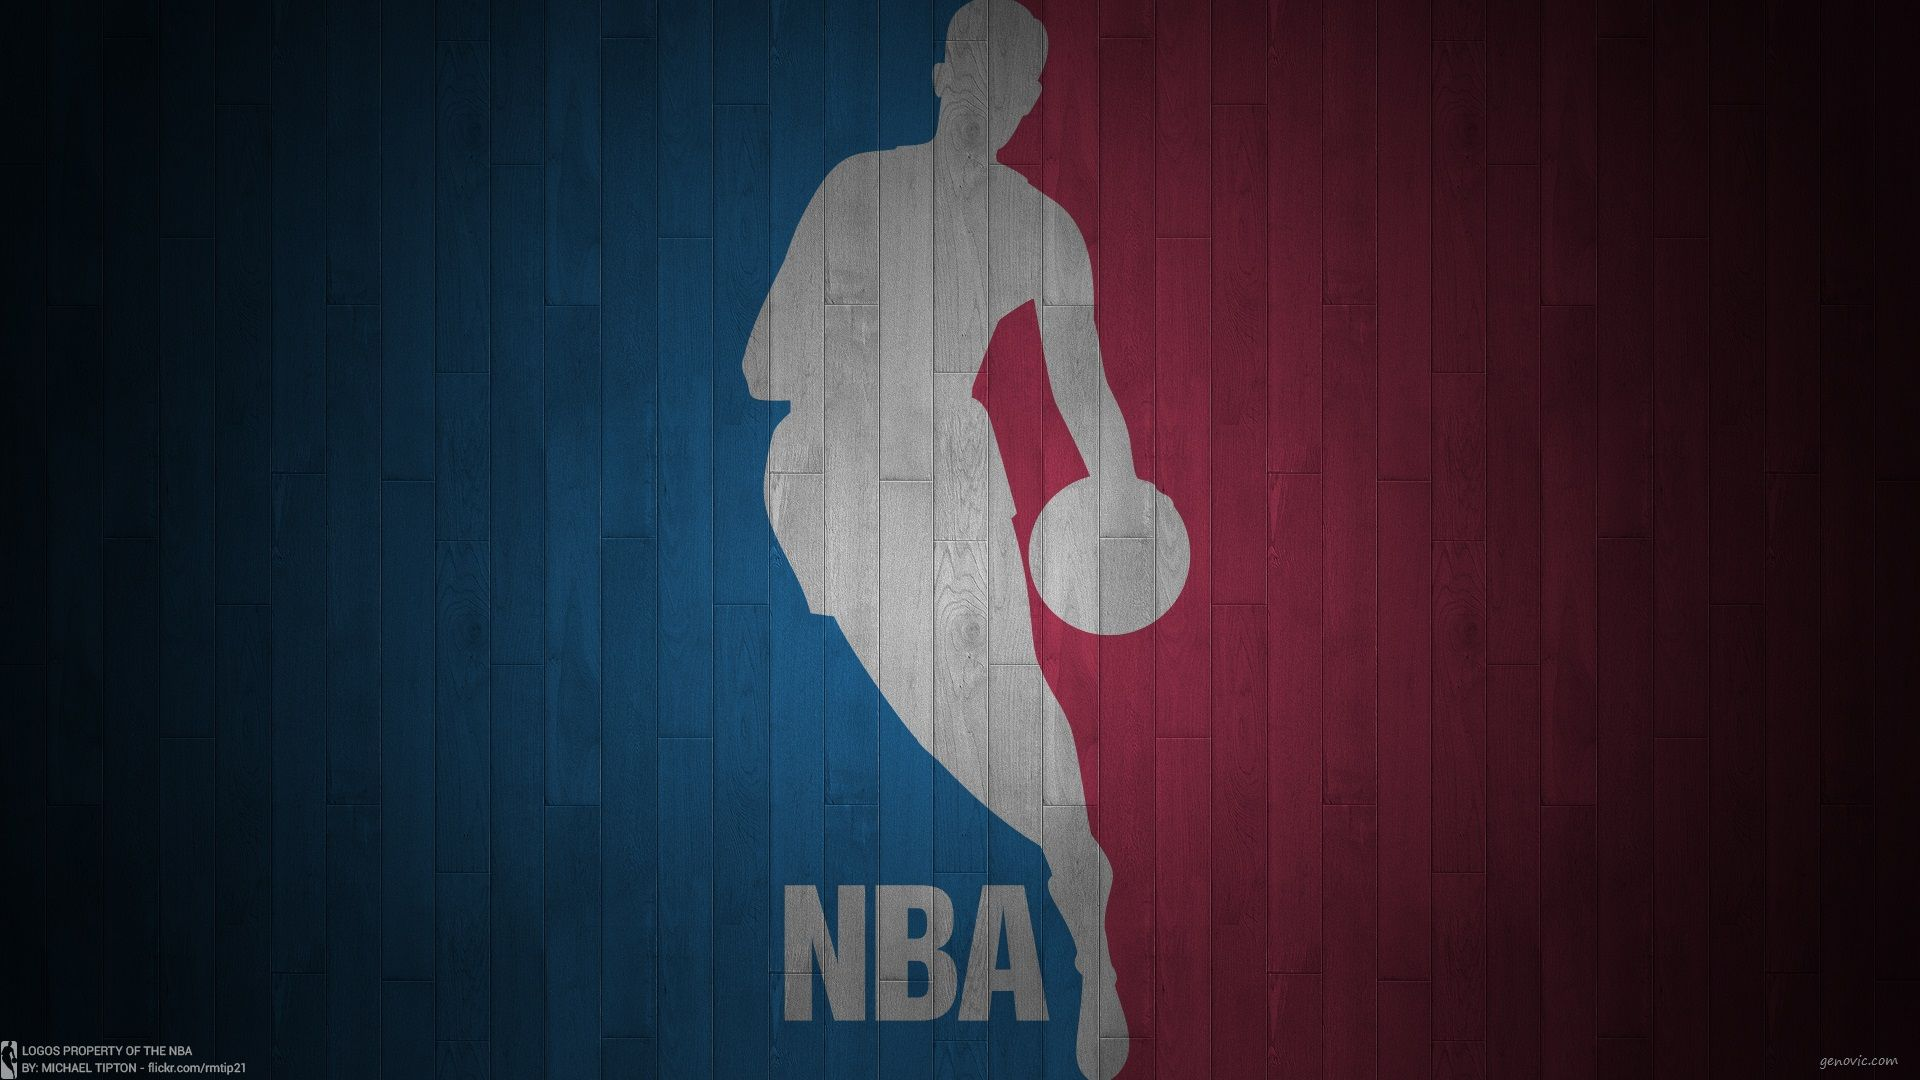 NBA HD Wallpaper